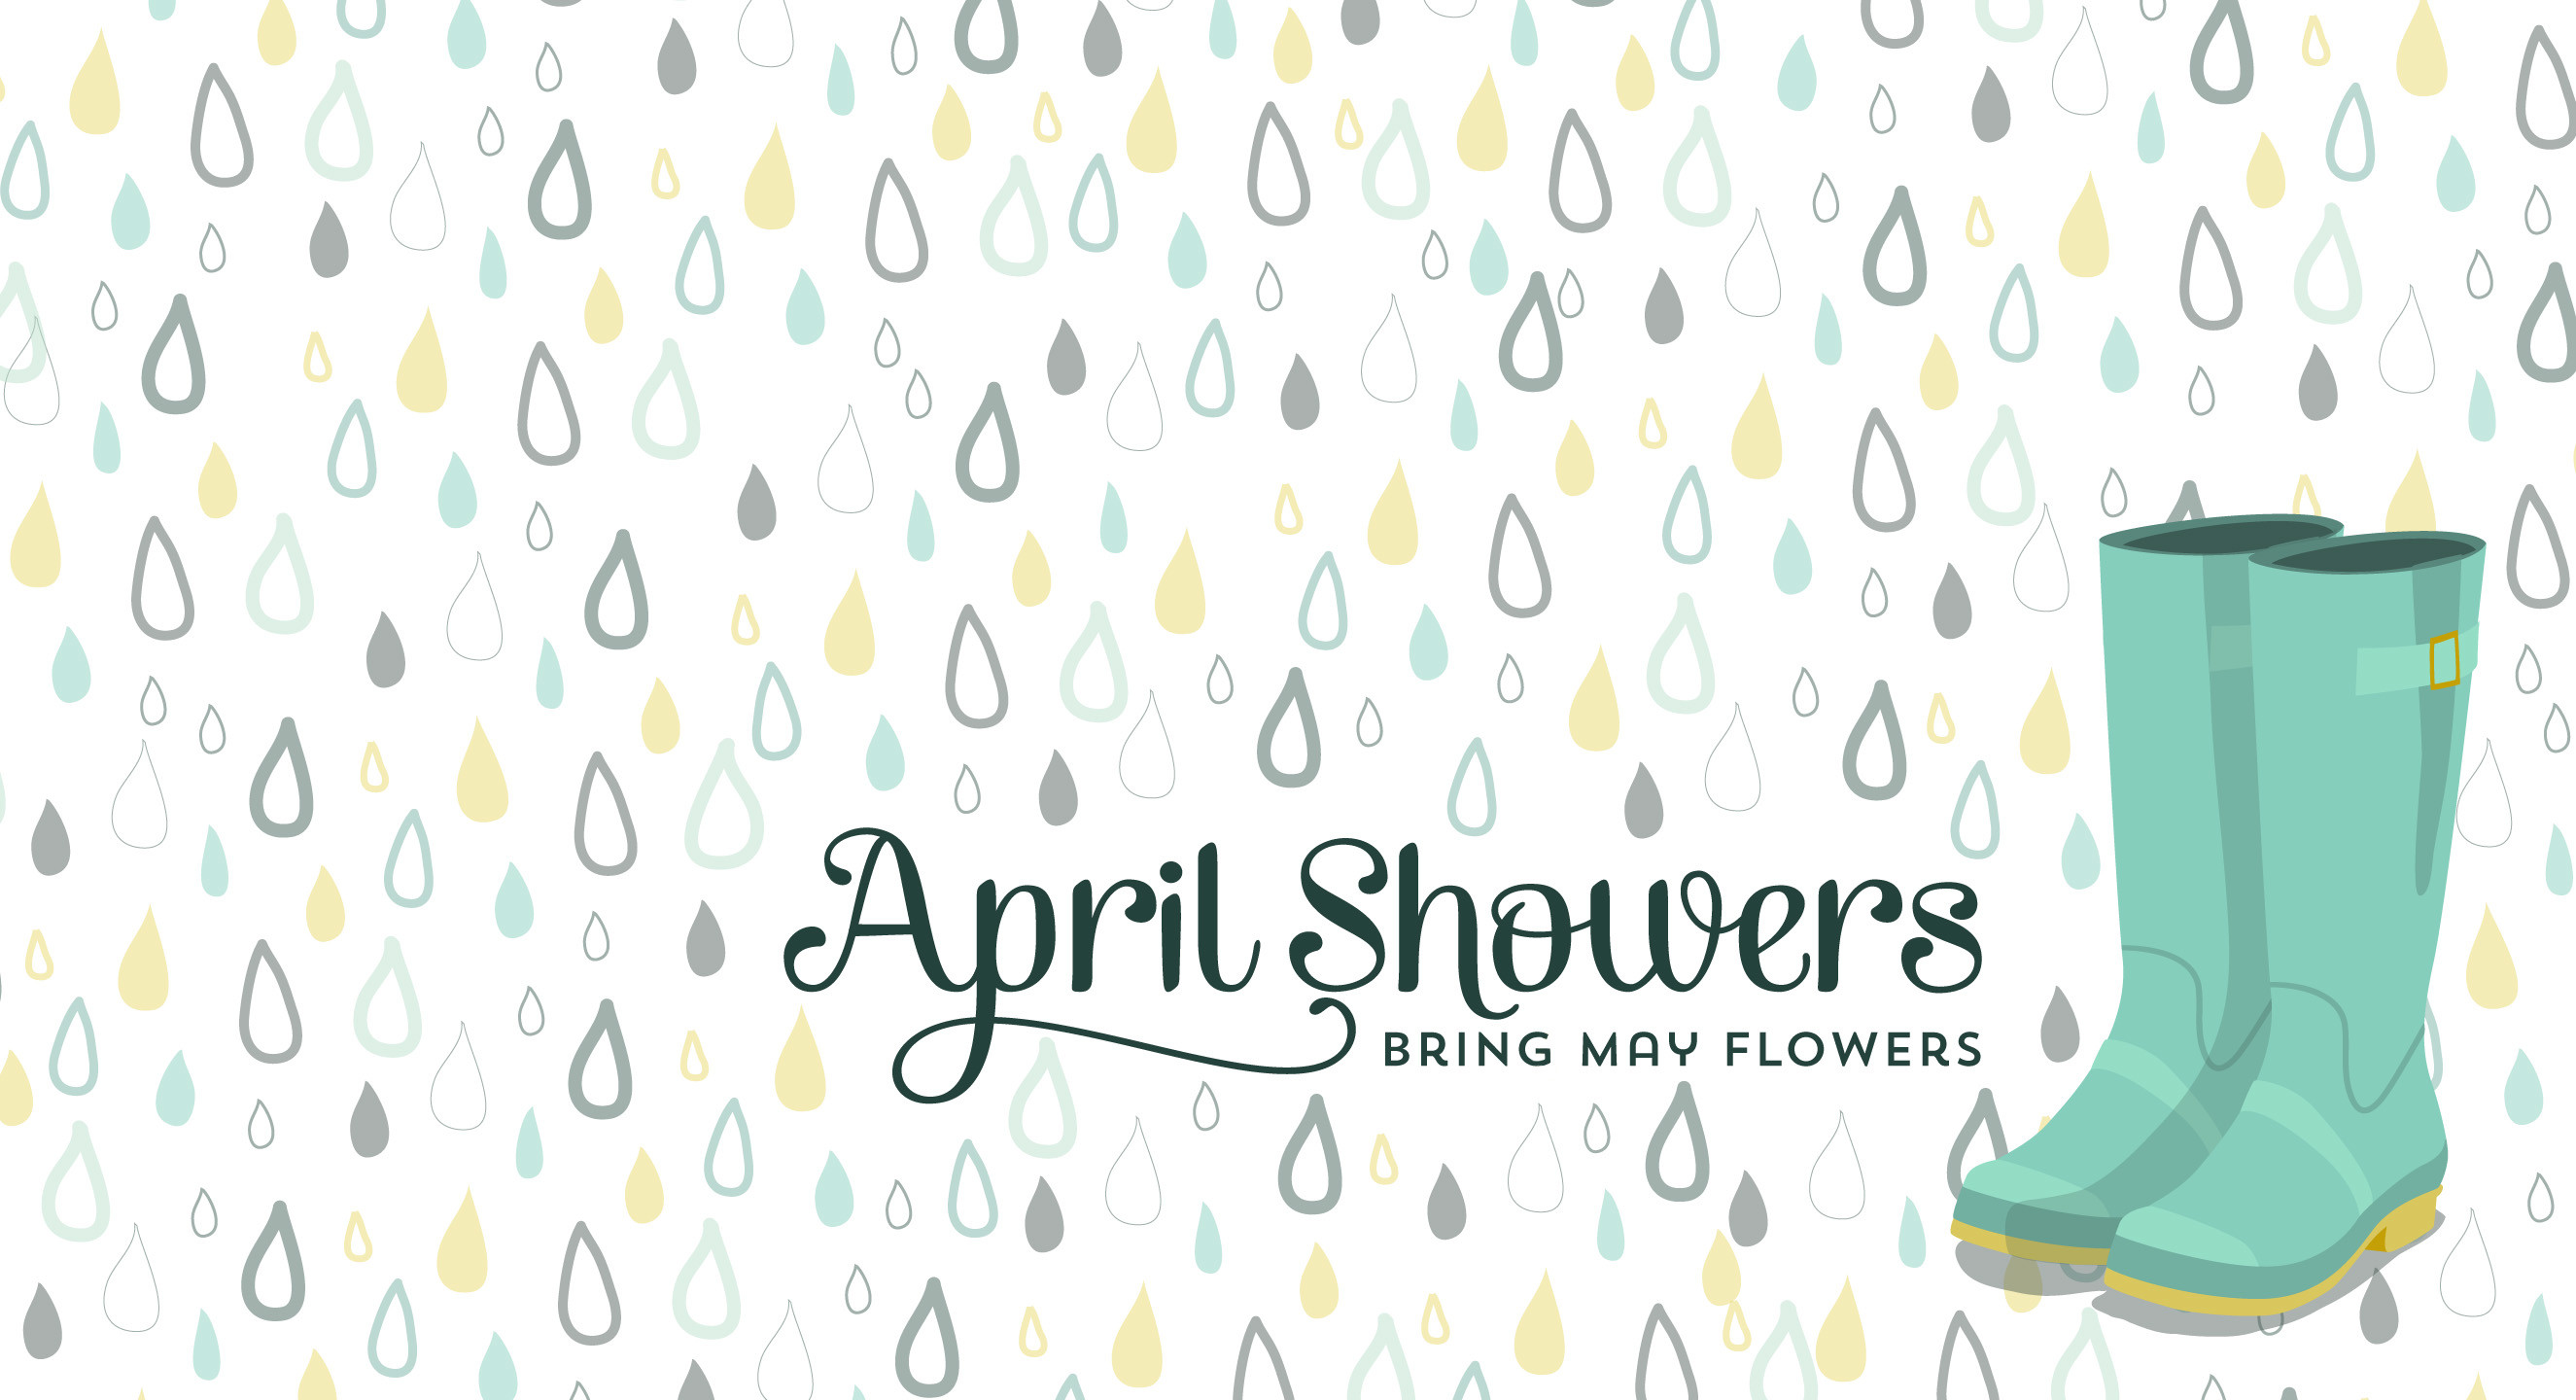 April Showers Bring May Flowers Background